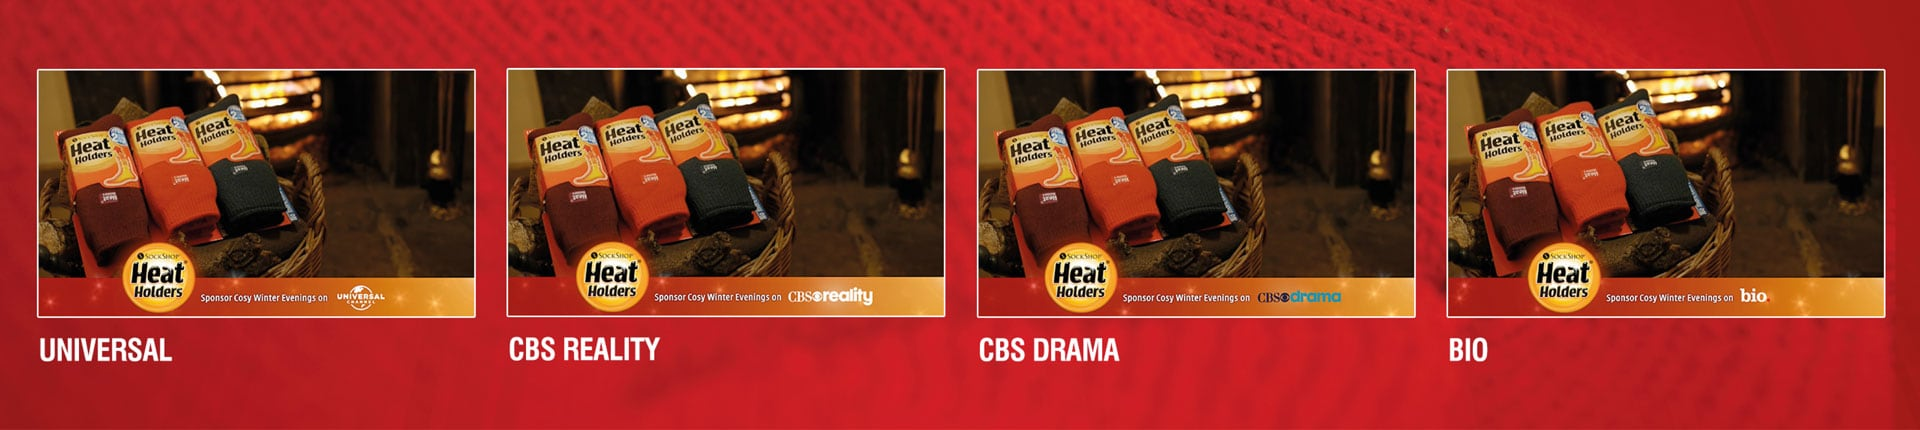 Heat Holders Cbs Campaign